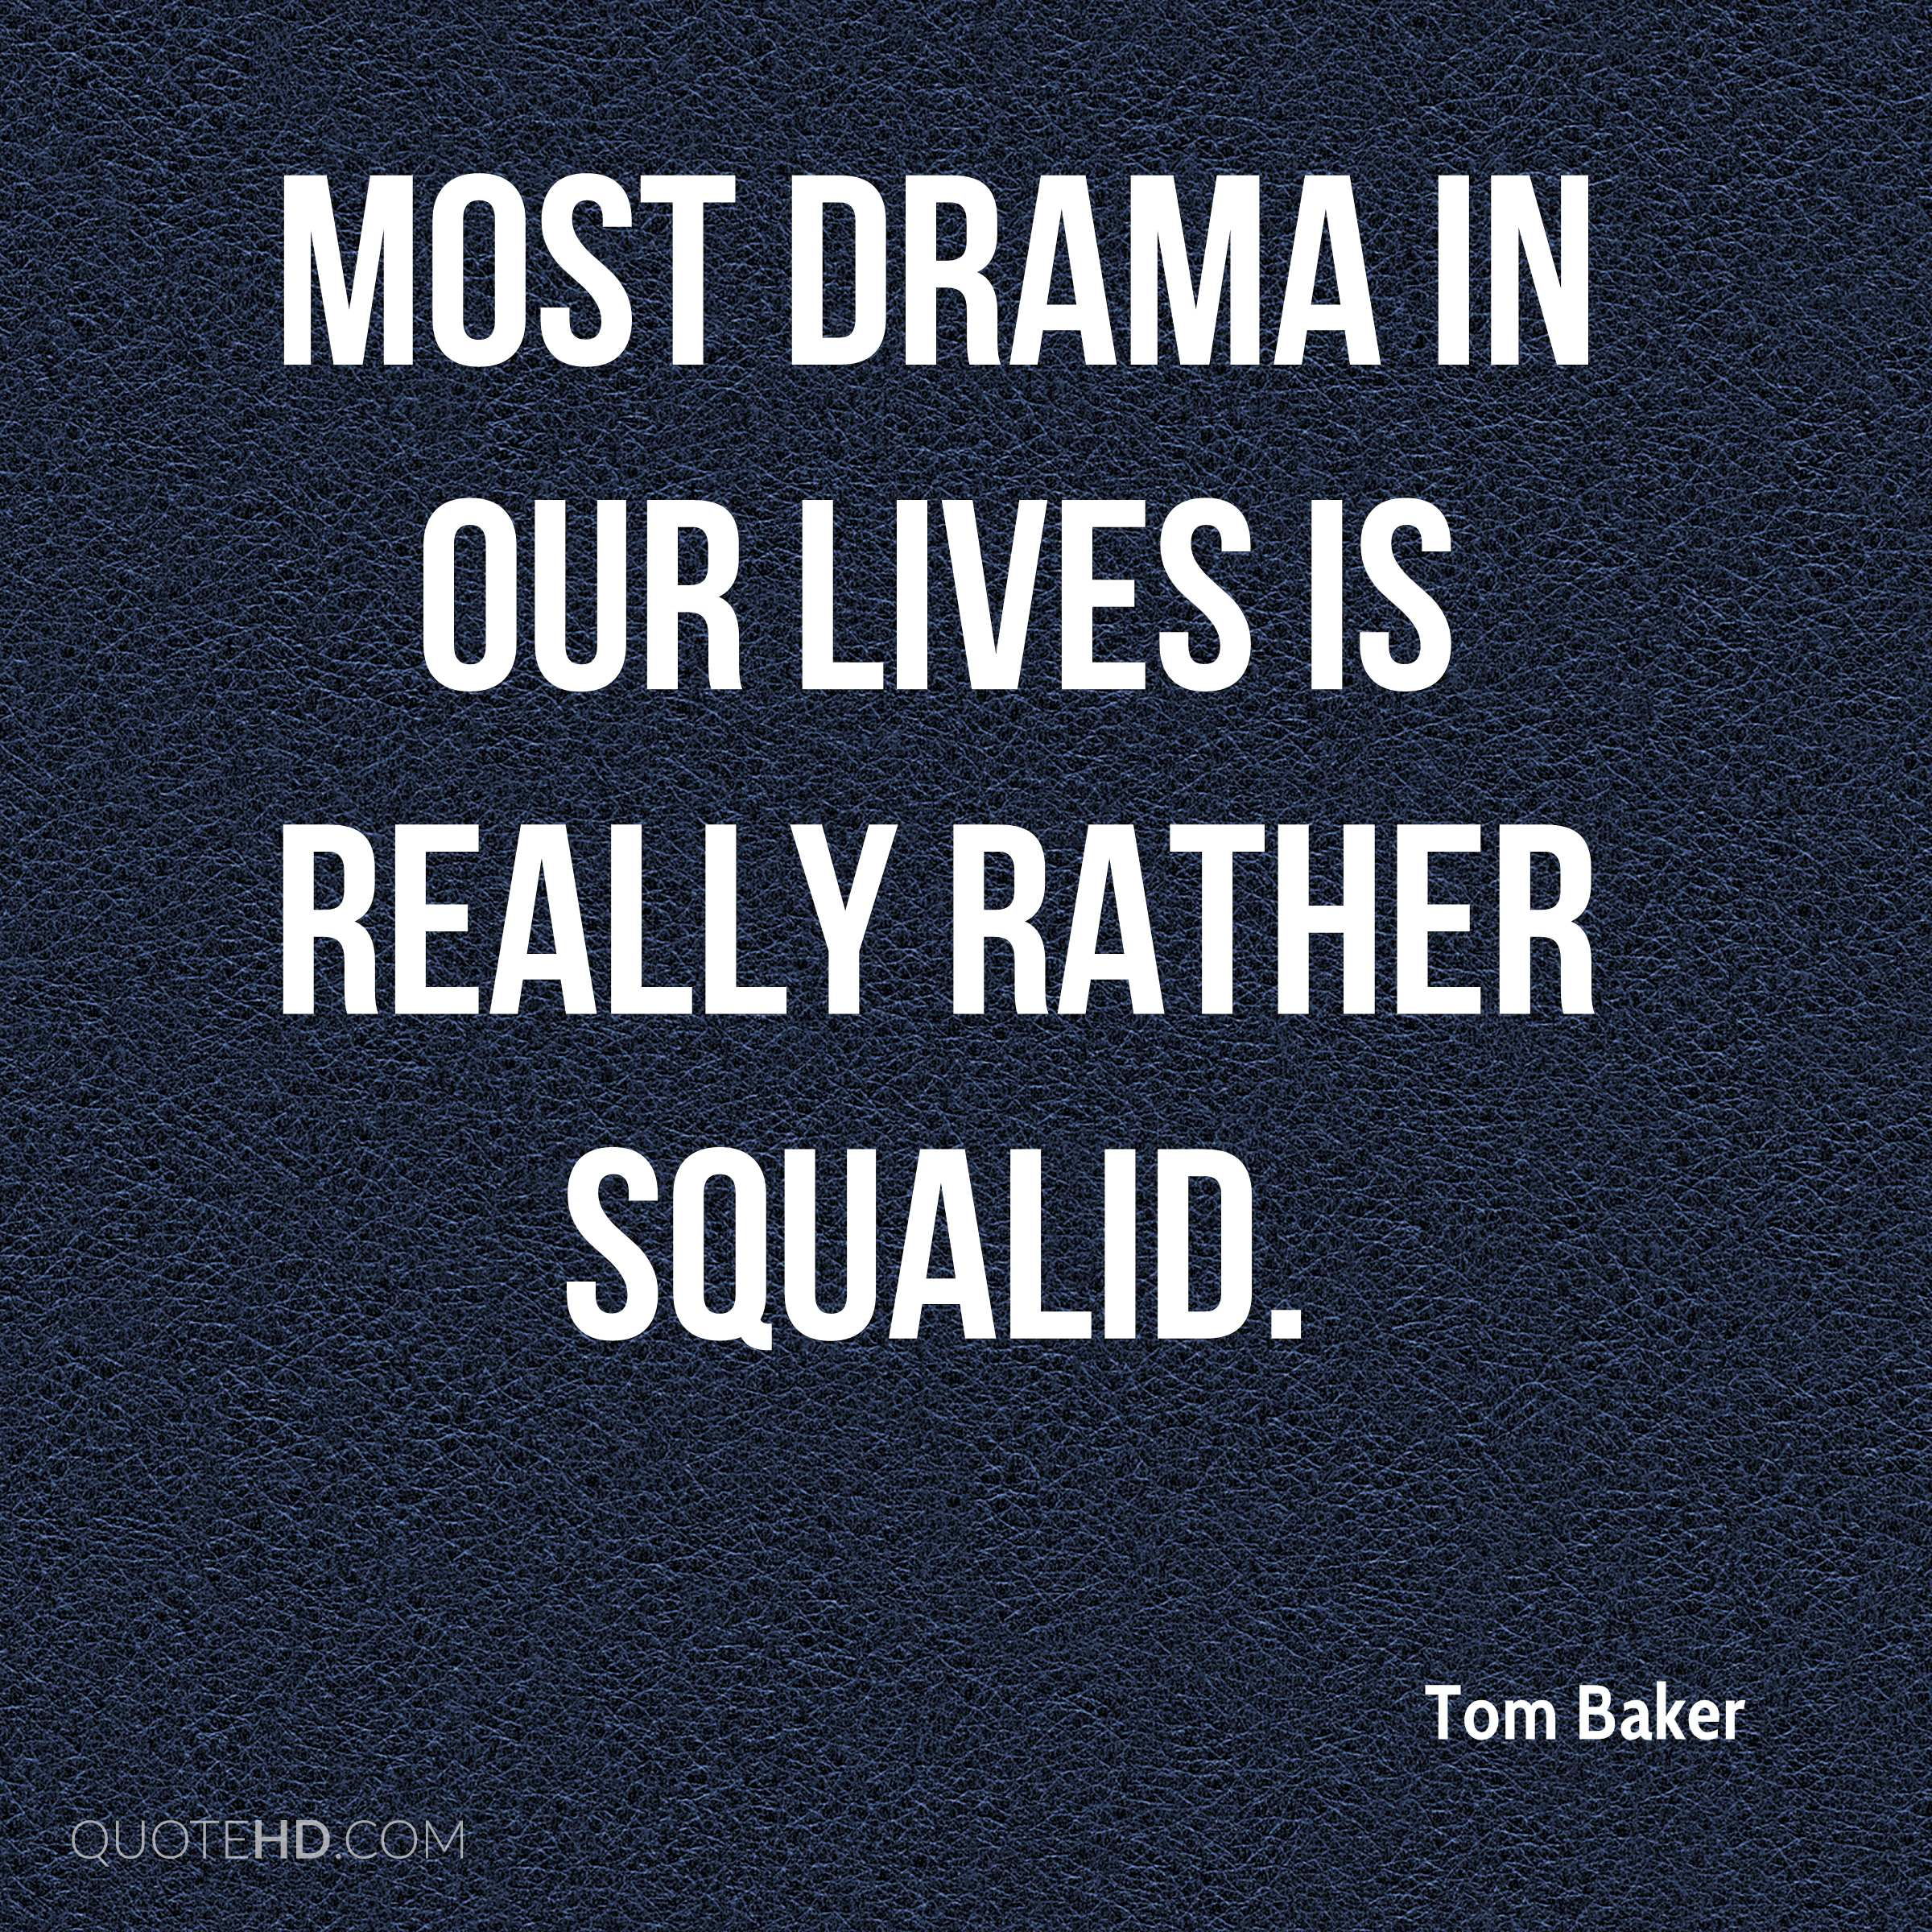 Most drama in our lives is really rather squalid.